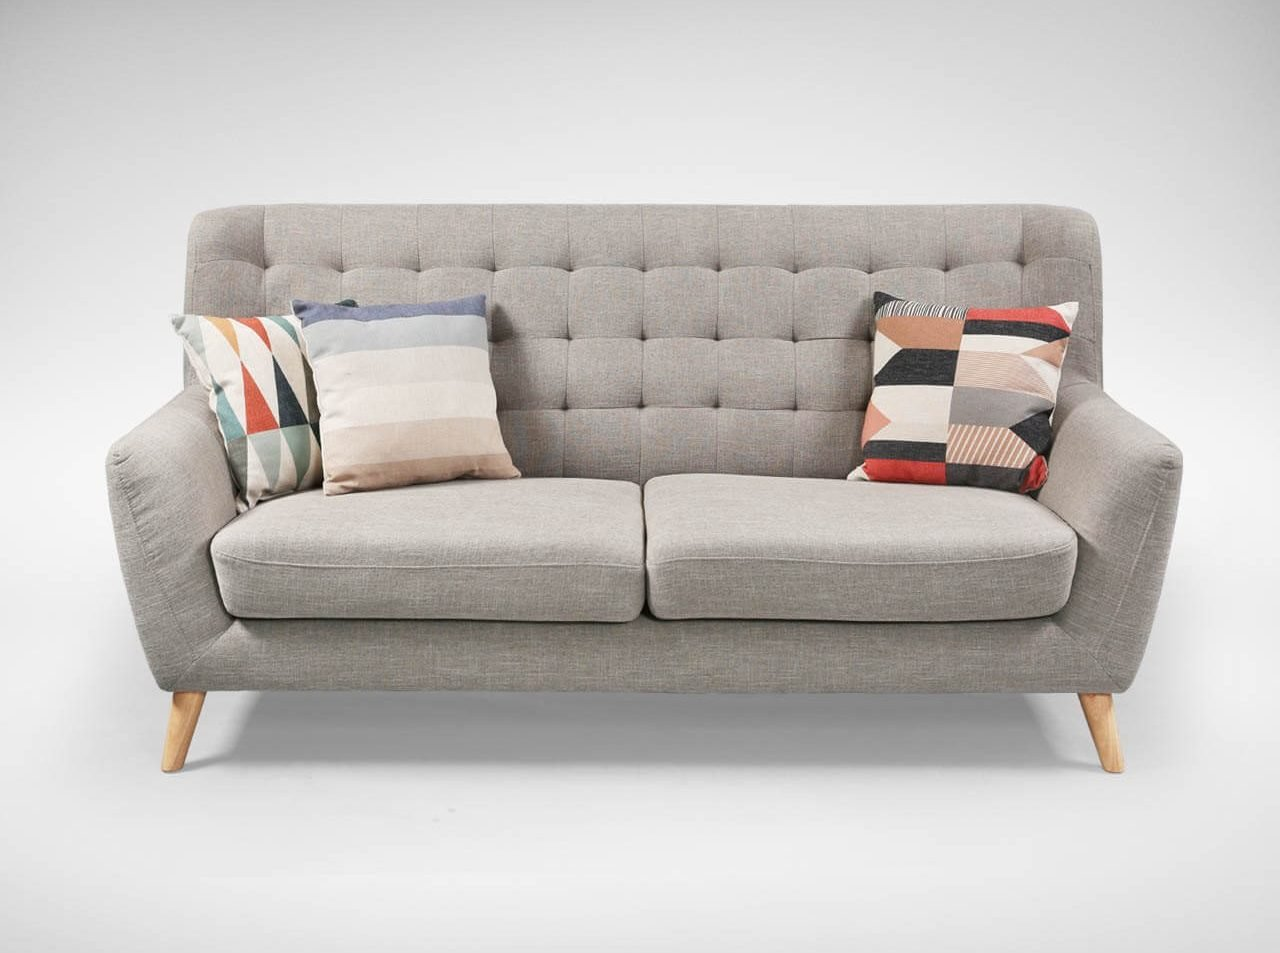 Mix and Match Sofa to Amp Up Living Room - Comfort Furniture